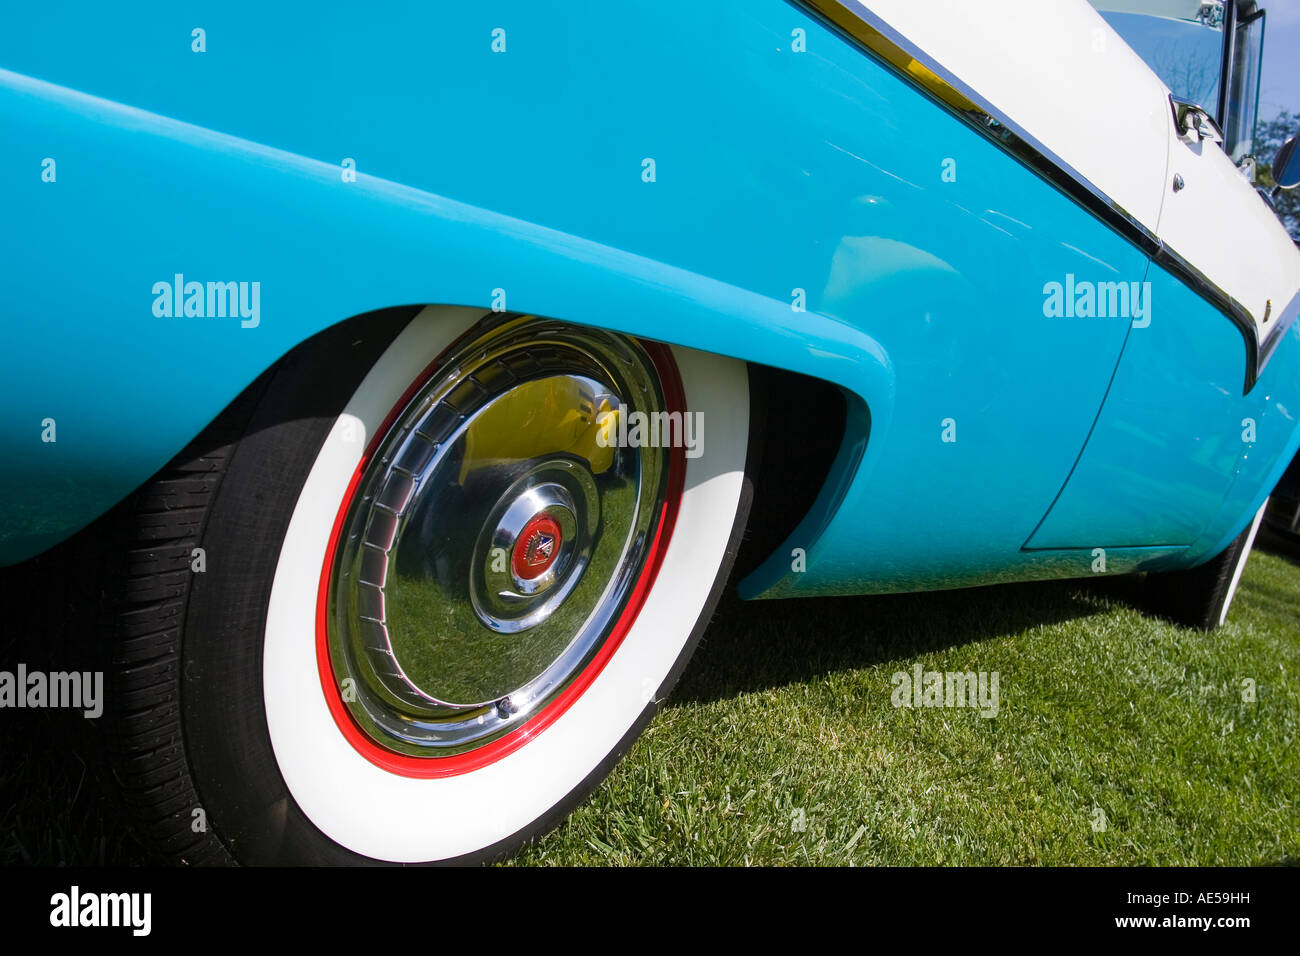 Side of a turquoise and white 1955 Ford Fairlane convertible classic car with red rim on whitewall tire and side - Stock Image